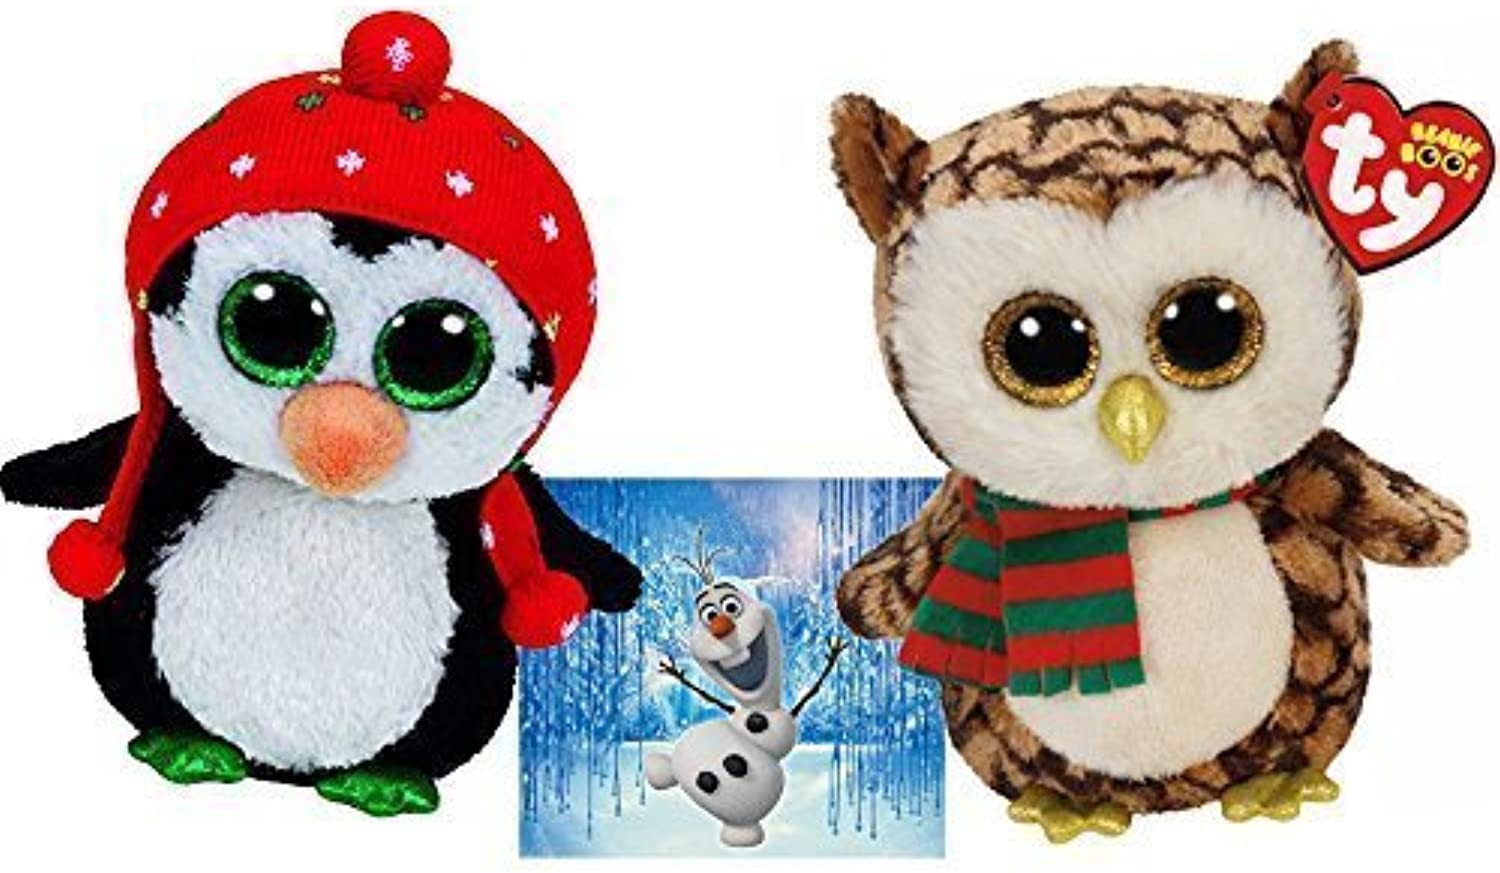 Ty Beanie Boos WISE Owl with Scarf and FREEZE Penguin with Knit Hat 6  Set of 2 Winter Holiday Christmas 2015 toys with Bonus Frozen Olaf Sticker